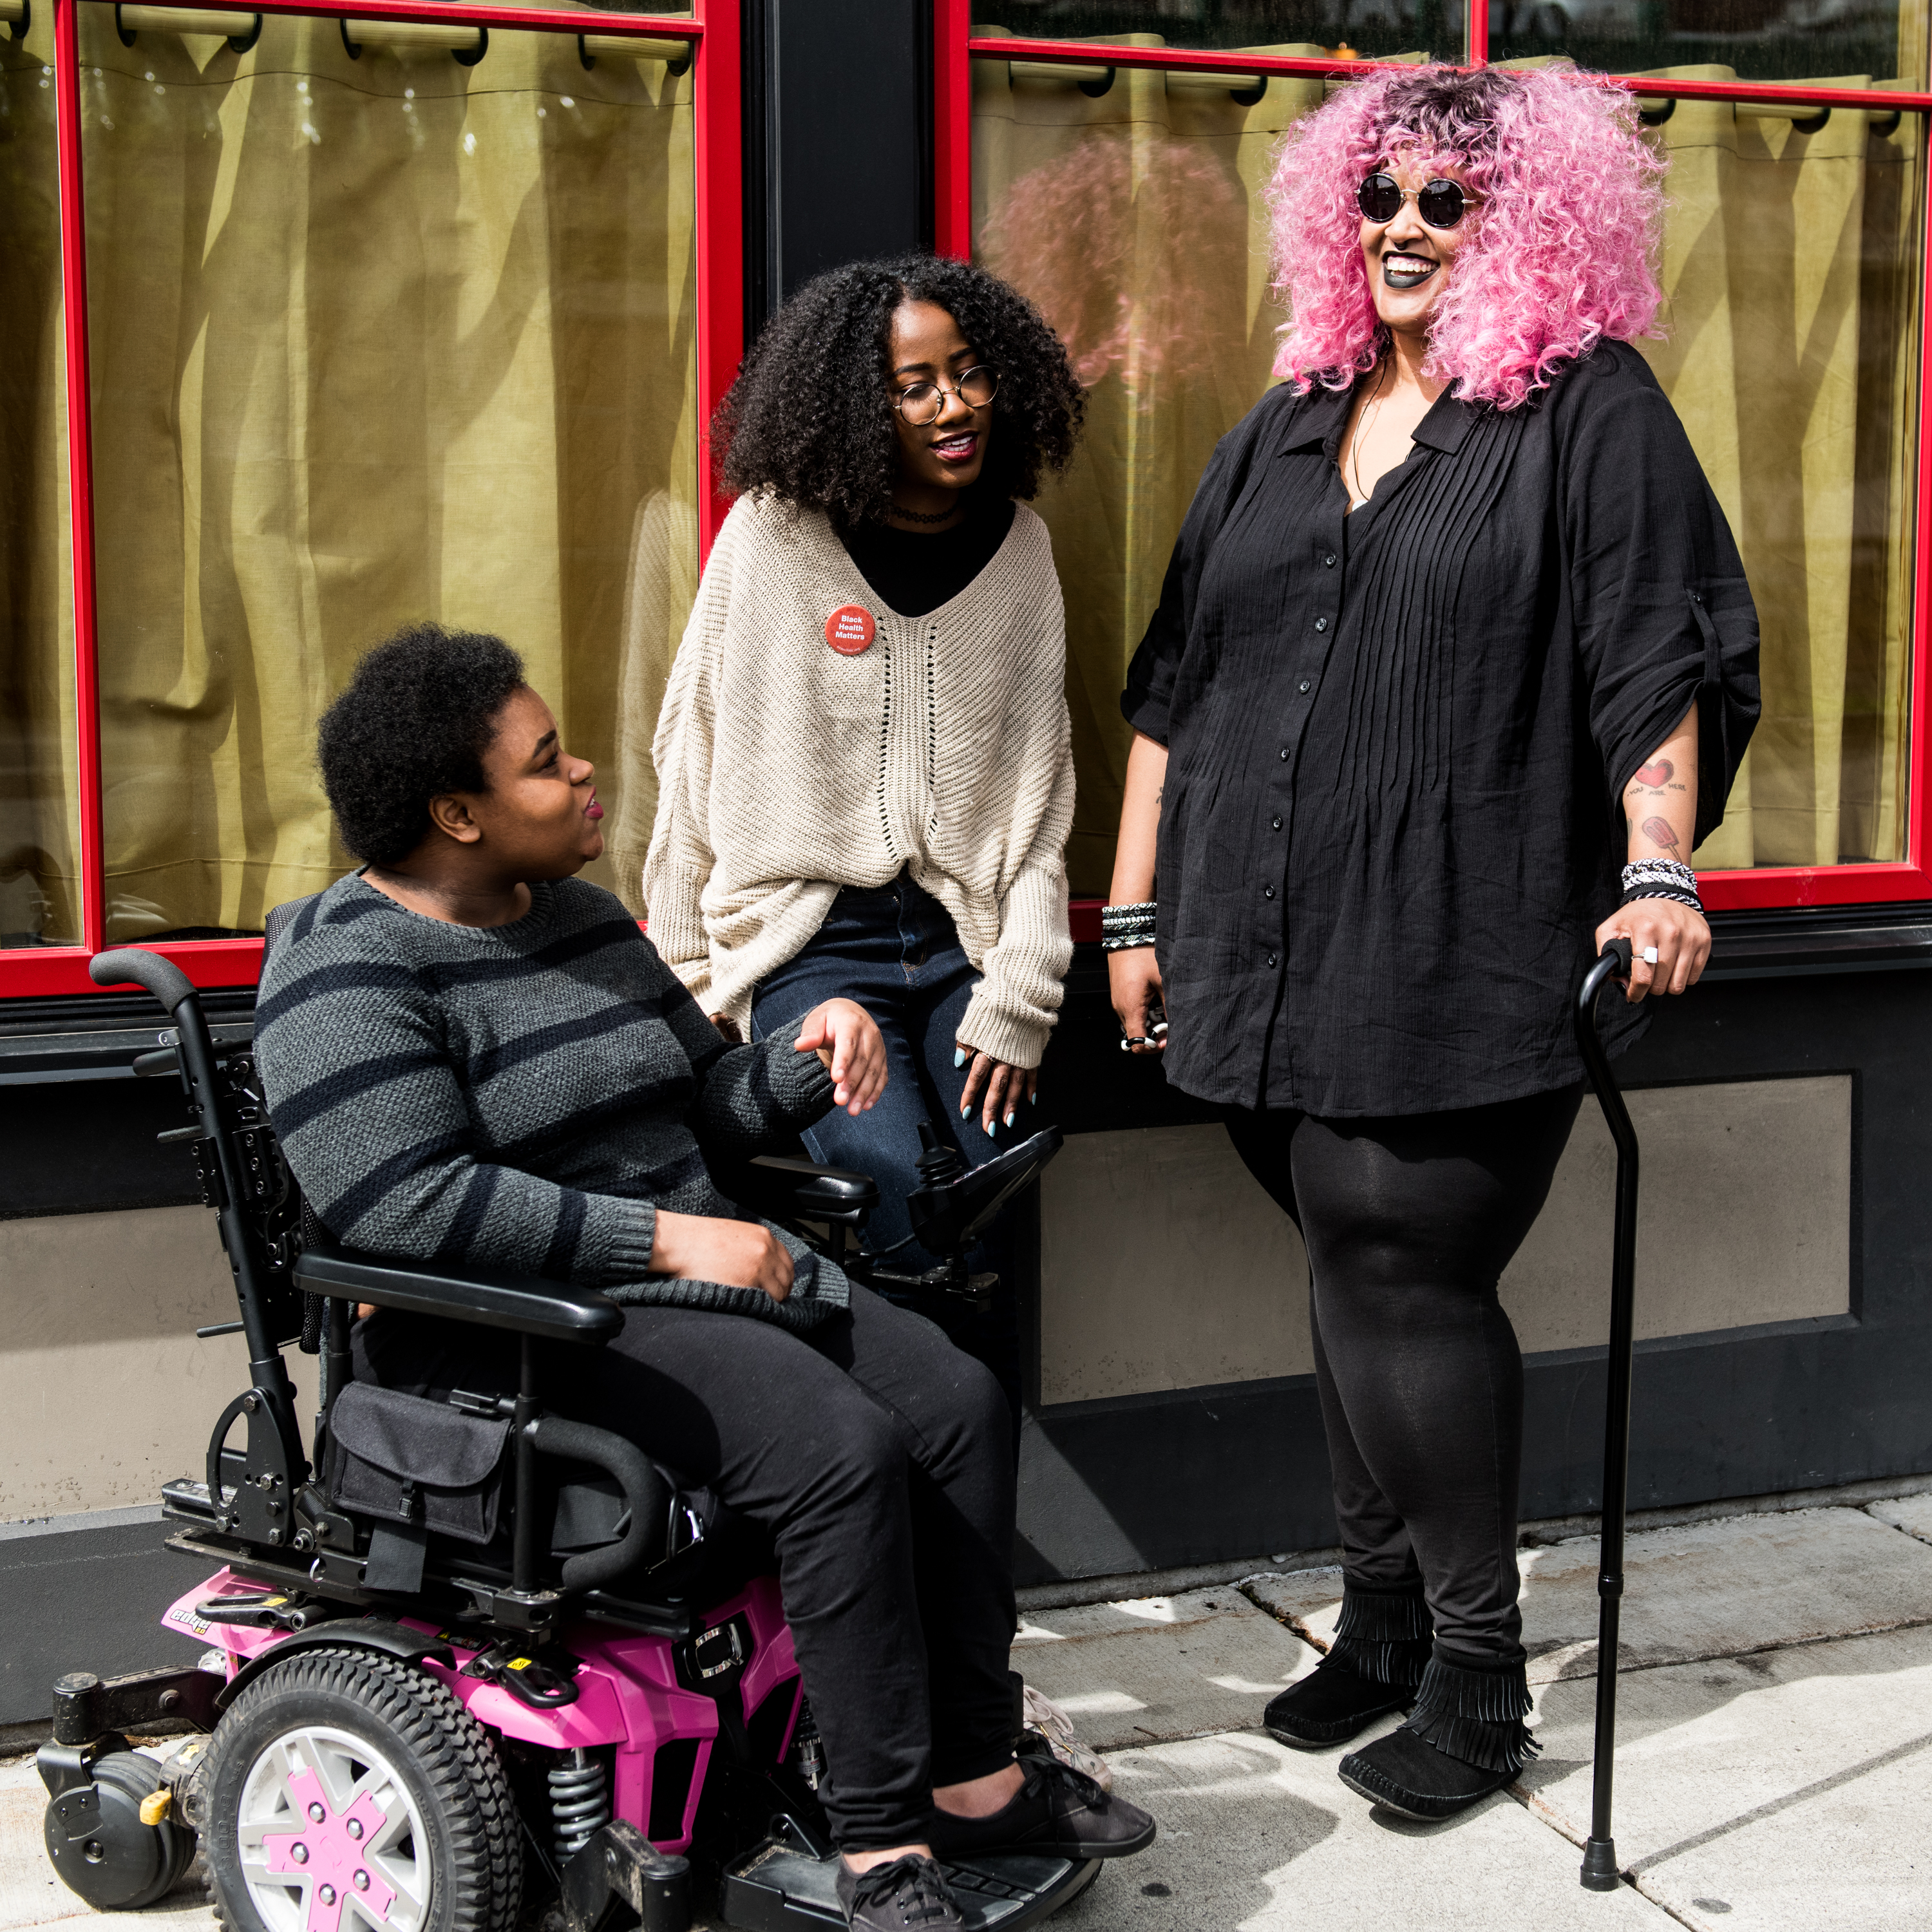 Three Black and disabled folx (one woman in a power wheelchair, one woman leaning against a wall, and one non-binary person standing with a cane) engaged in converation. All three are outdoors and in front of a building with two large windows.